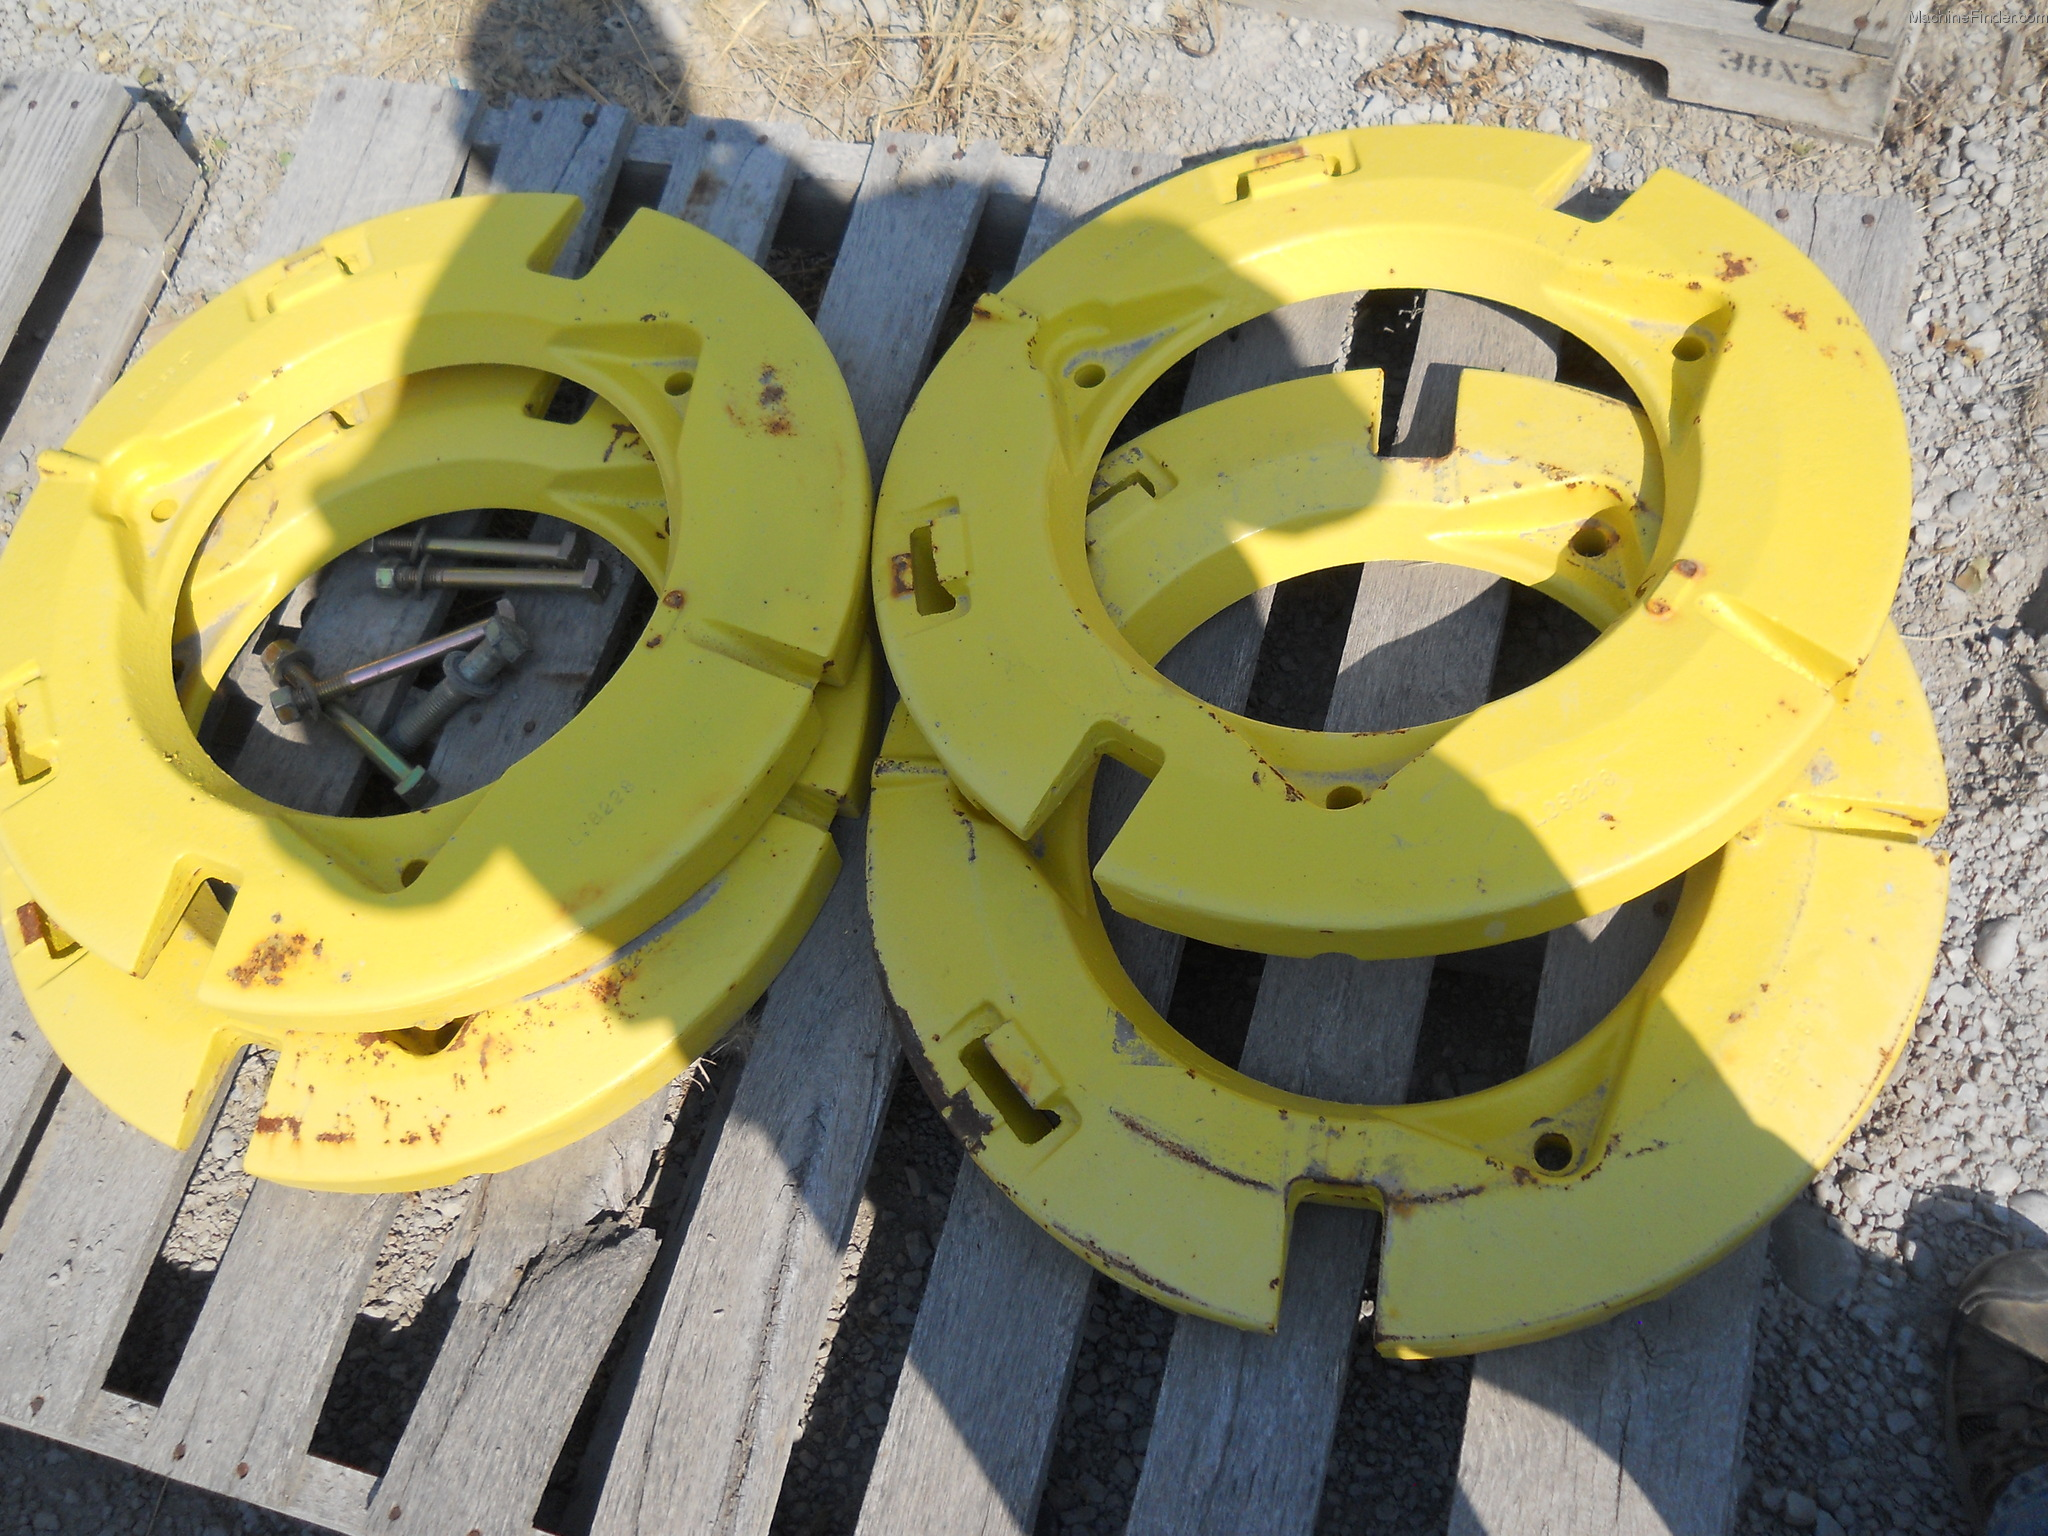 John Deere Rear Wheel Weights : John deere l rear wheel weights miscellaneous